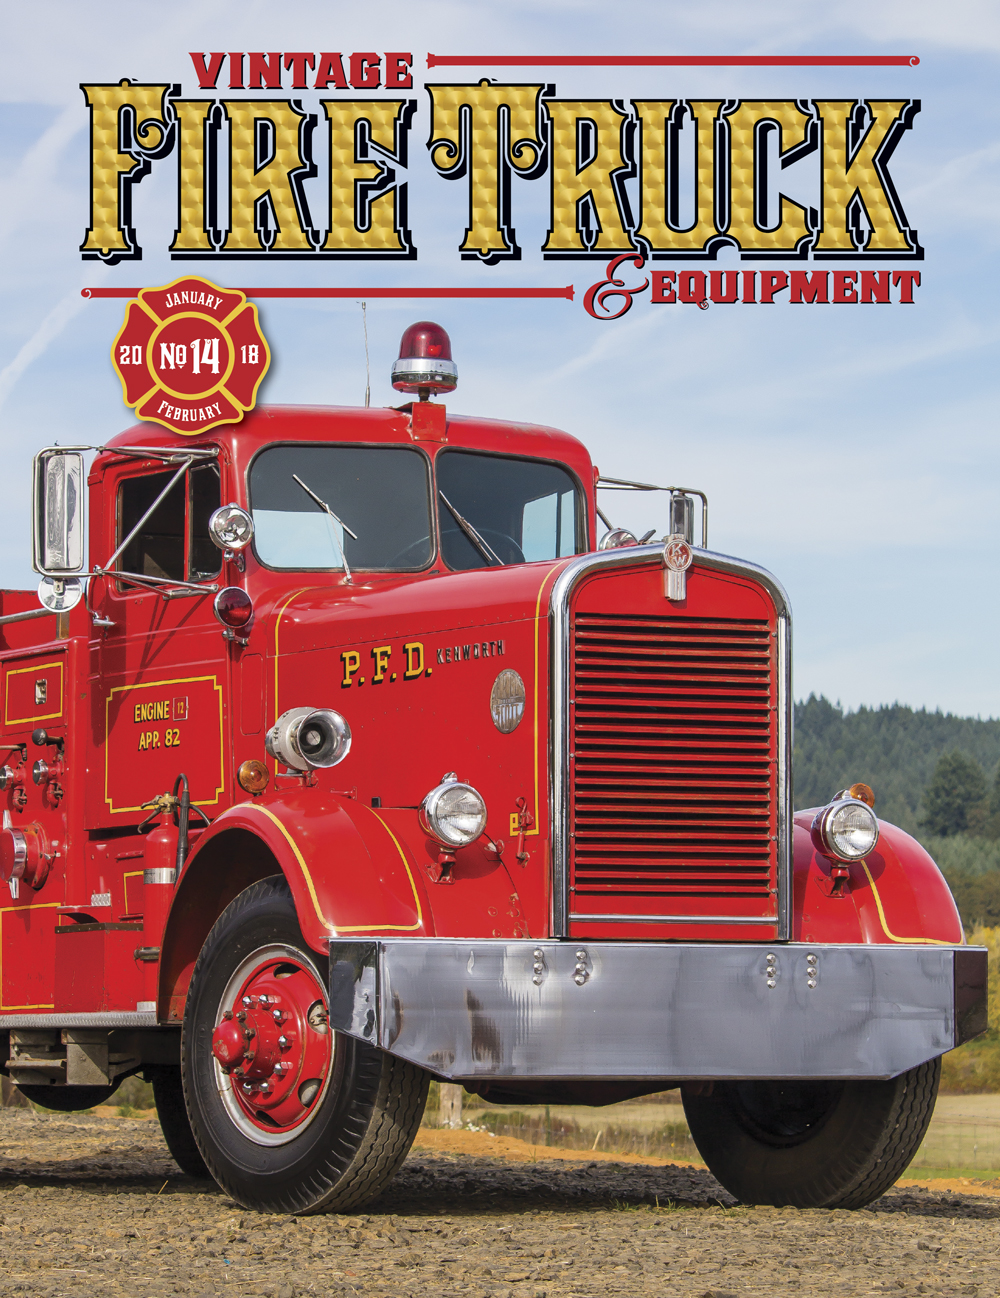 Vintage Fire Truck & Equipment magazine